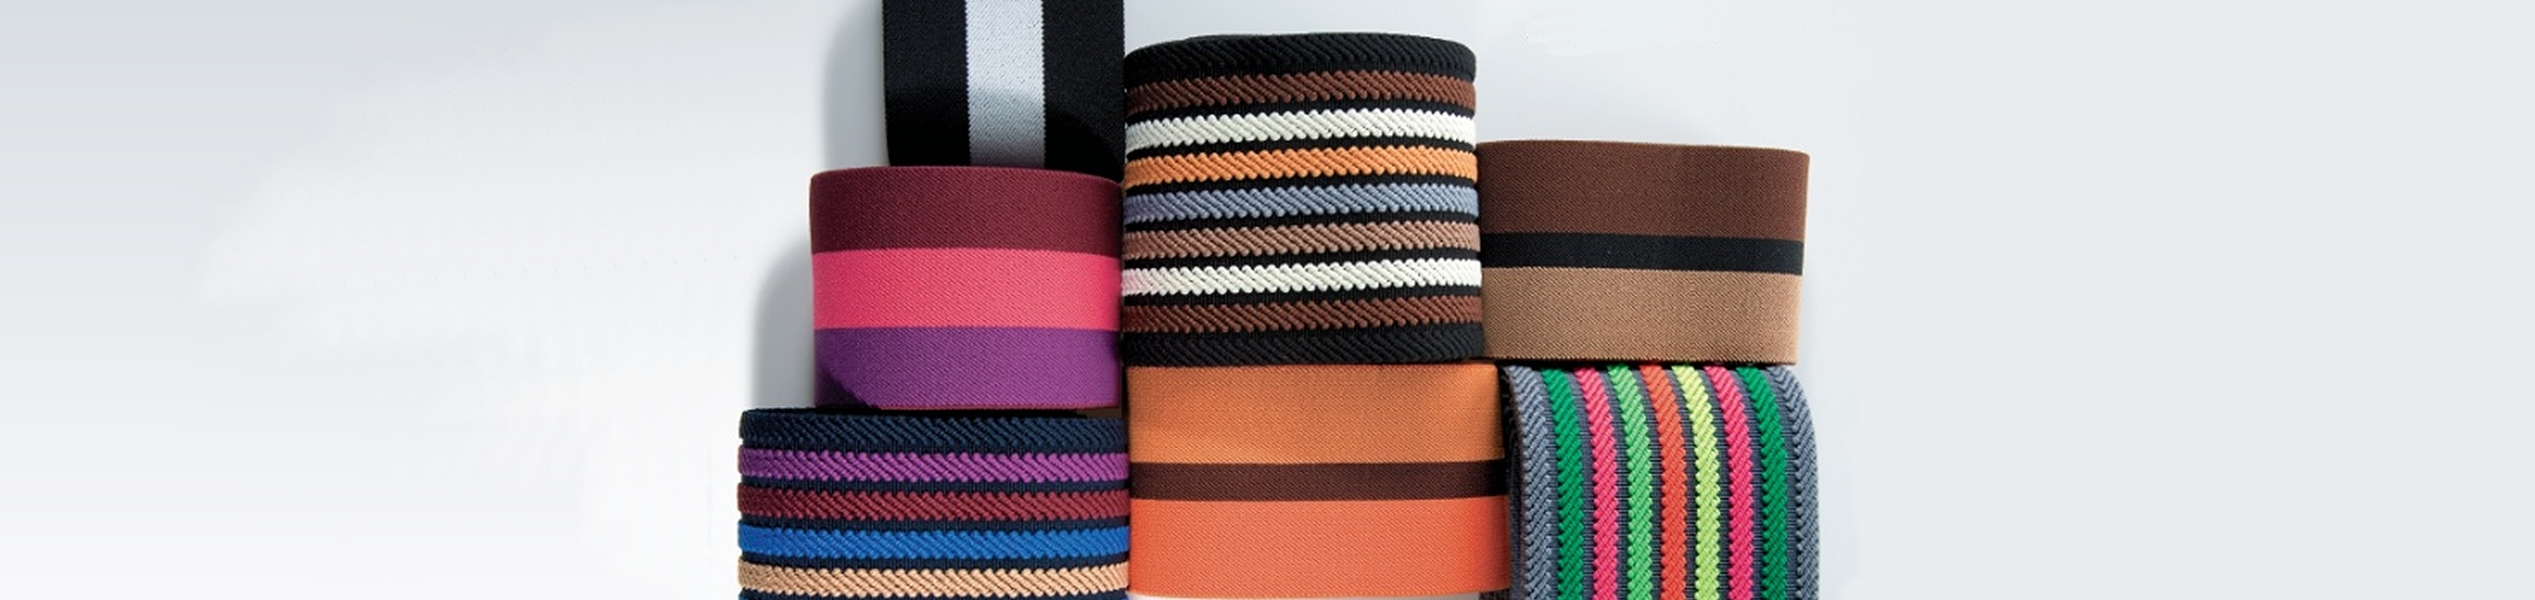 Elastic and rigid ribbon for clothing, Milano